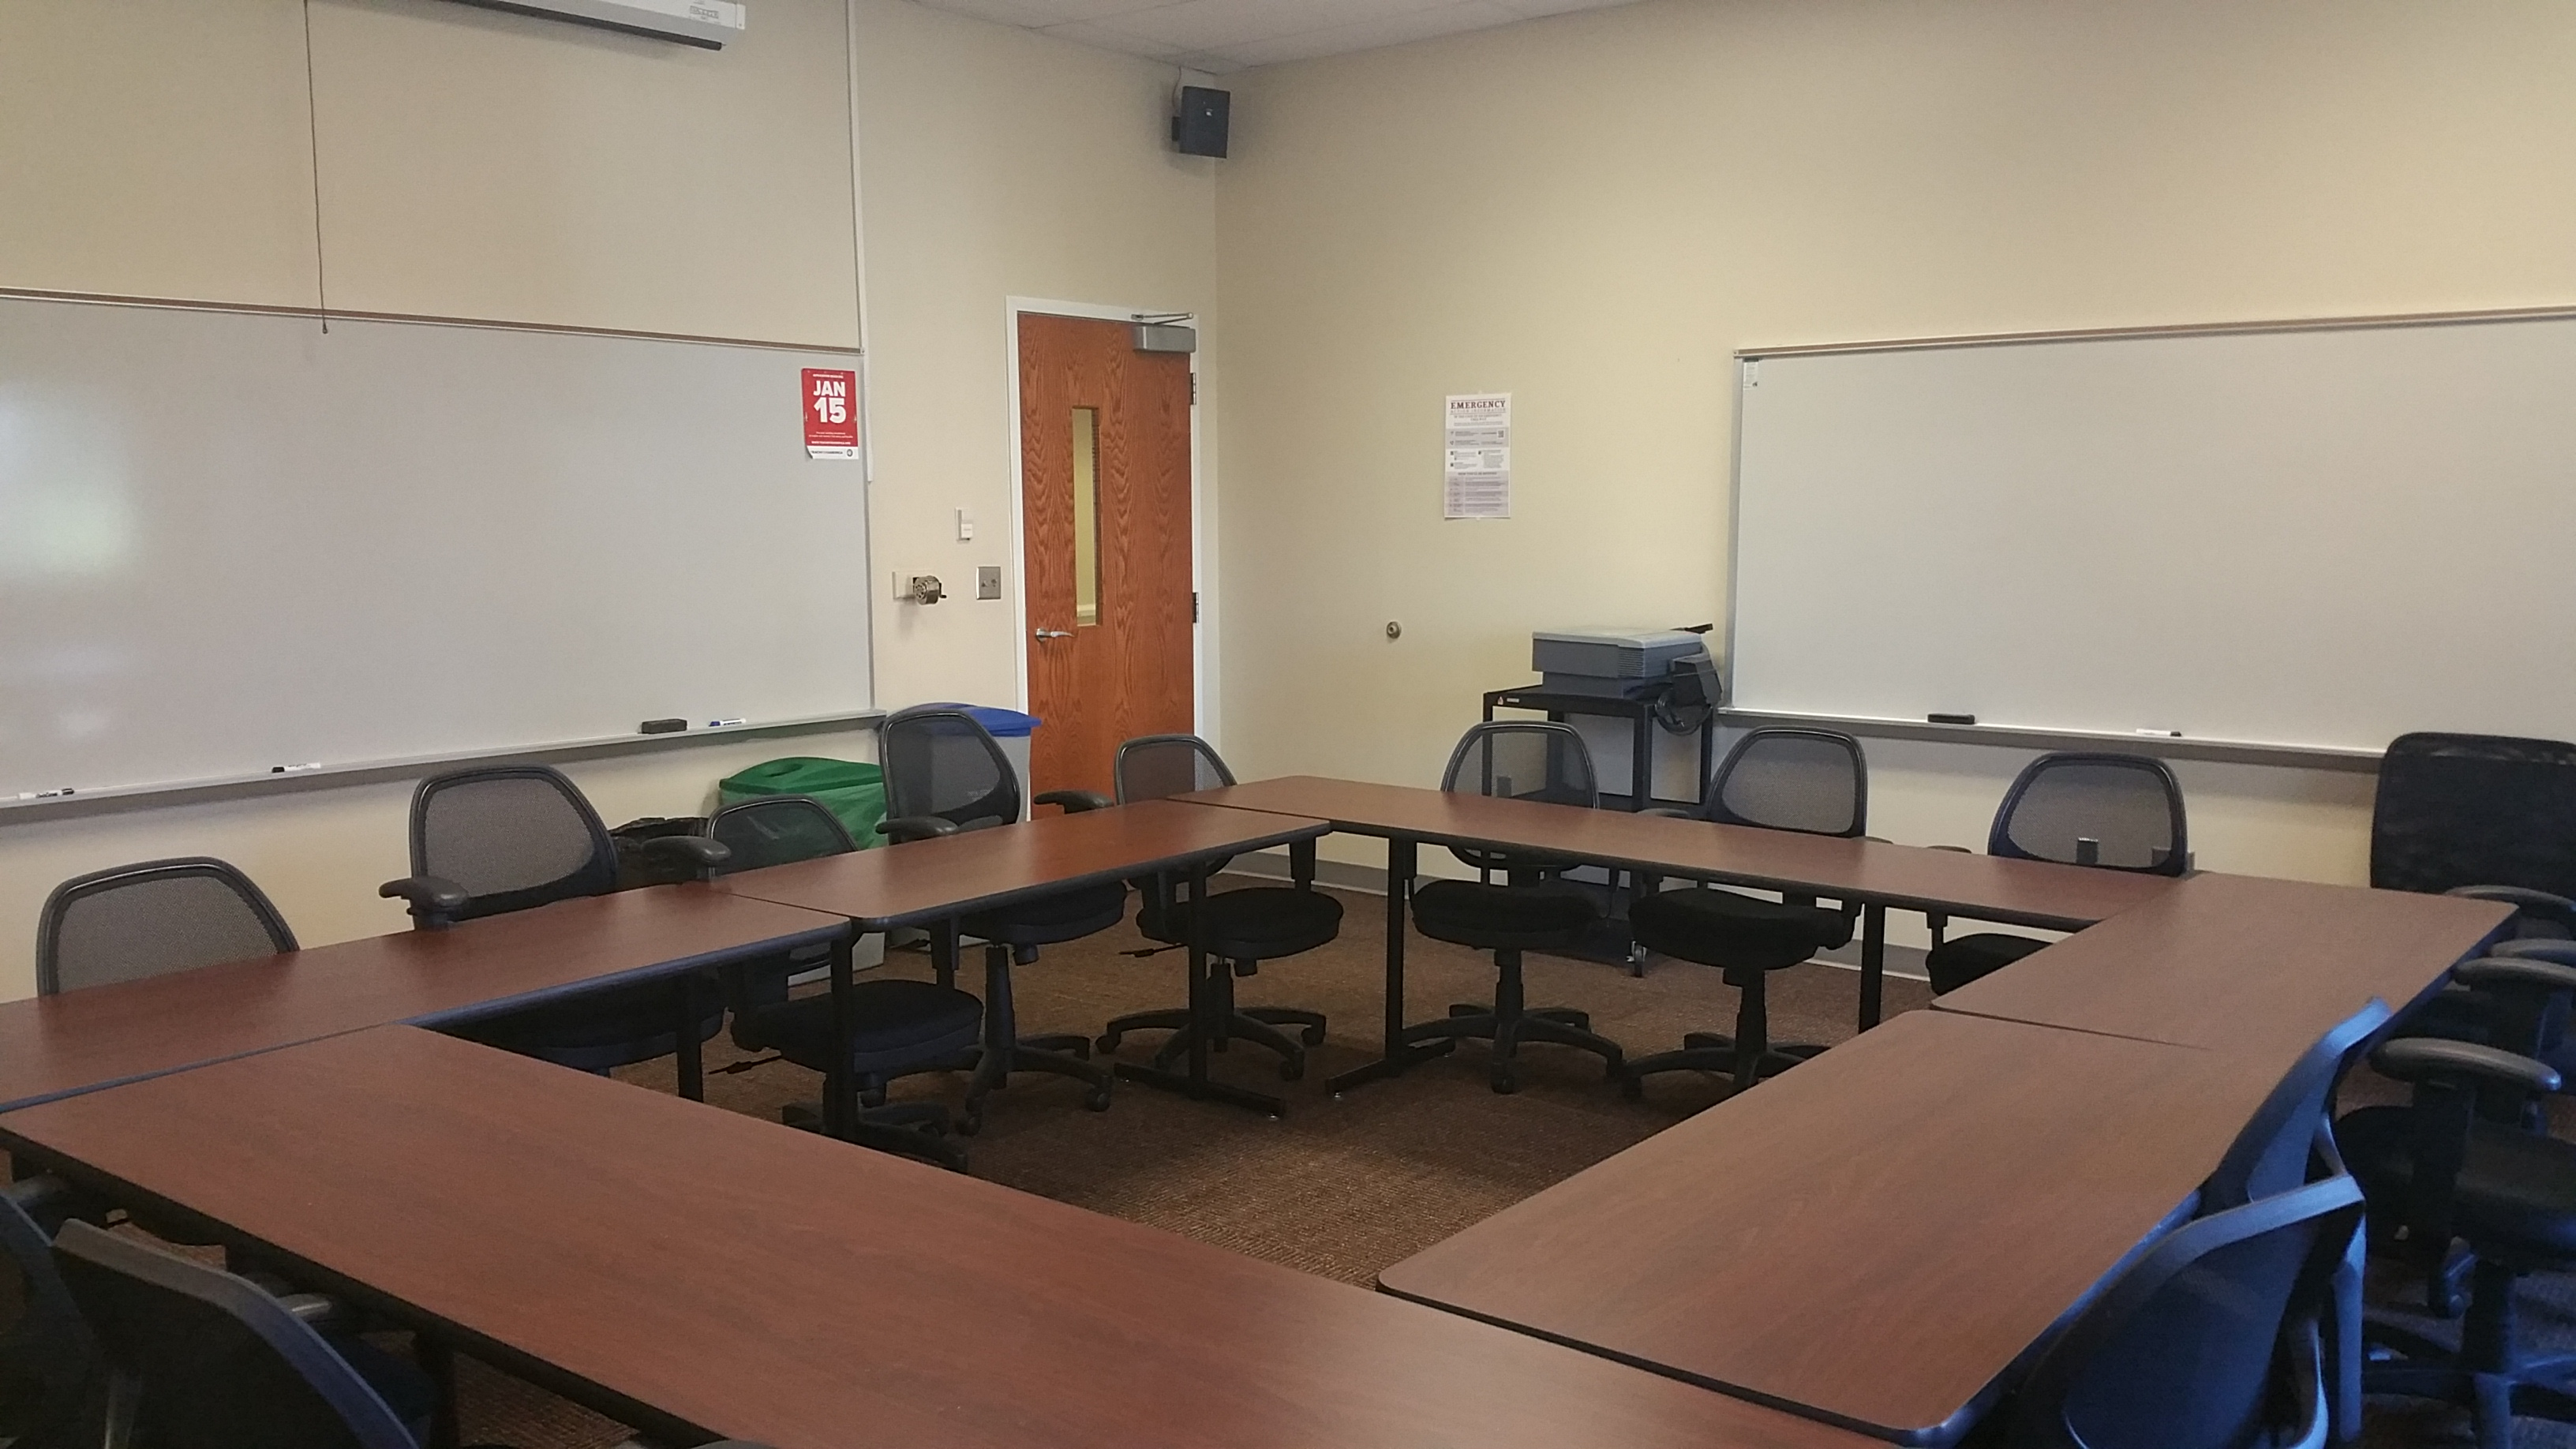 Photo of room taken from the back of the classroom showing student furniture and white boards